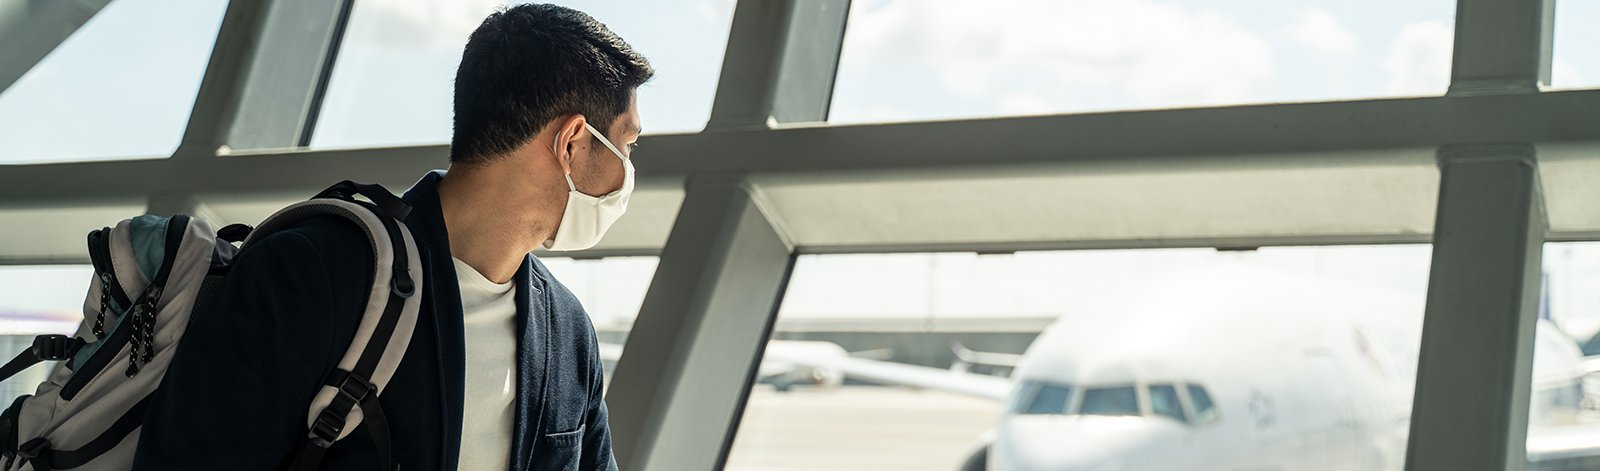 Man wearing a mask at the airport while looking at a plane